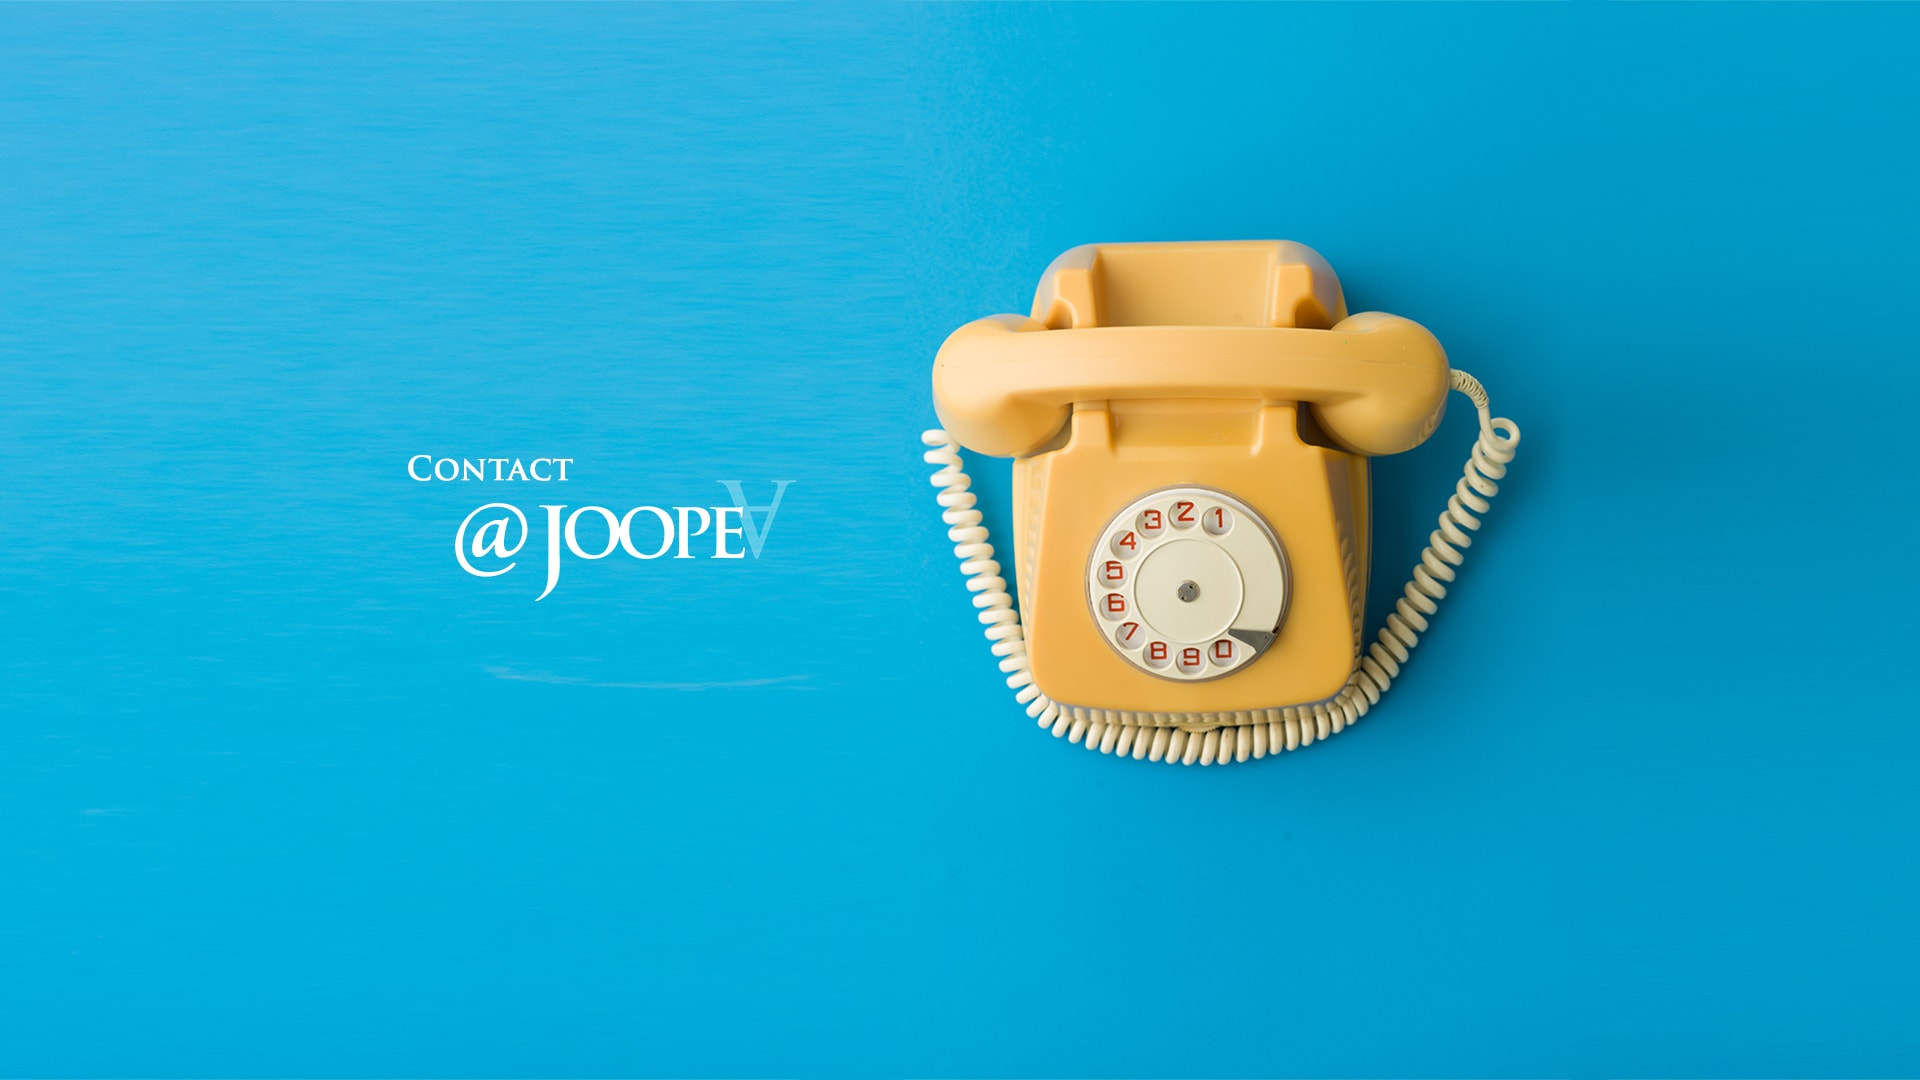 JoopeA Foundation - Contact